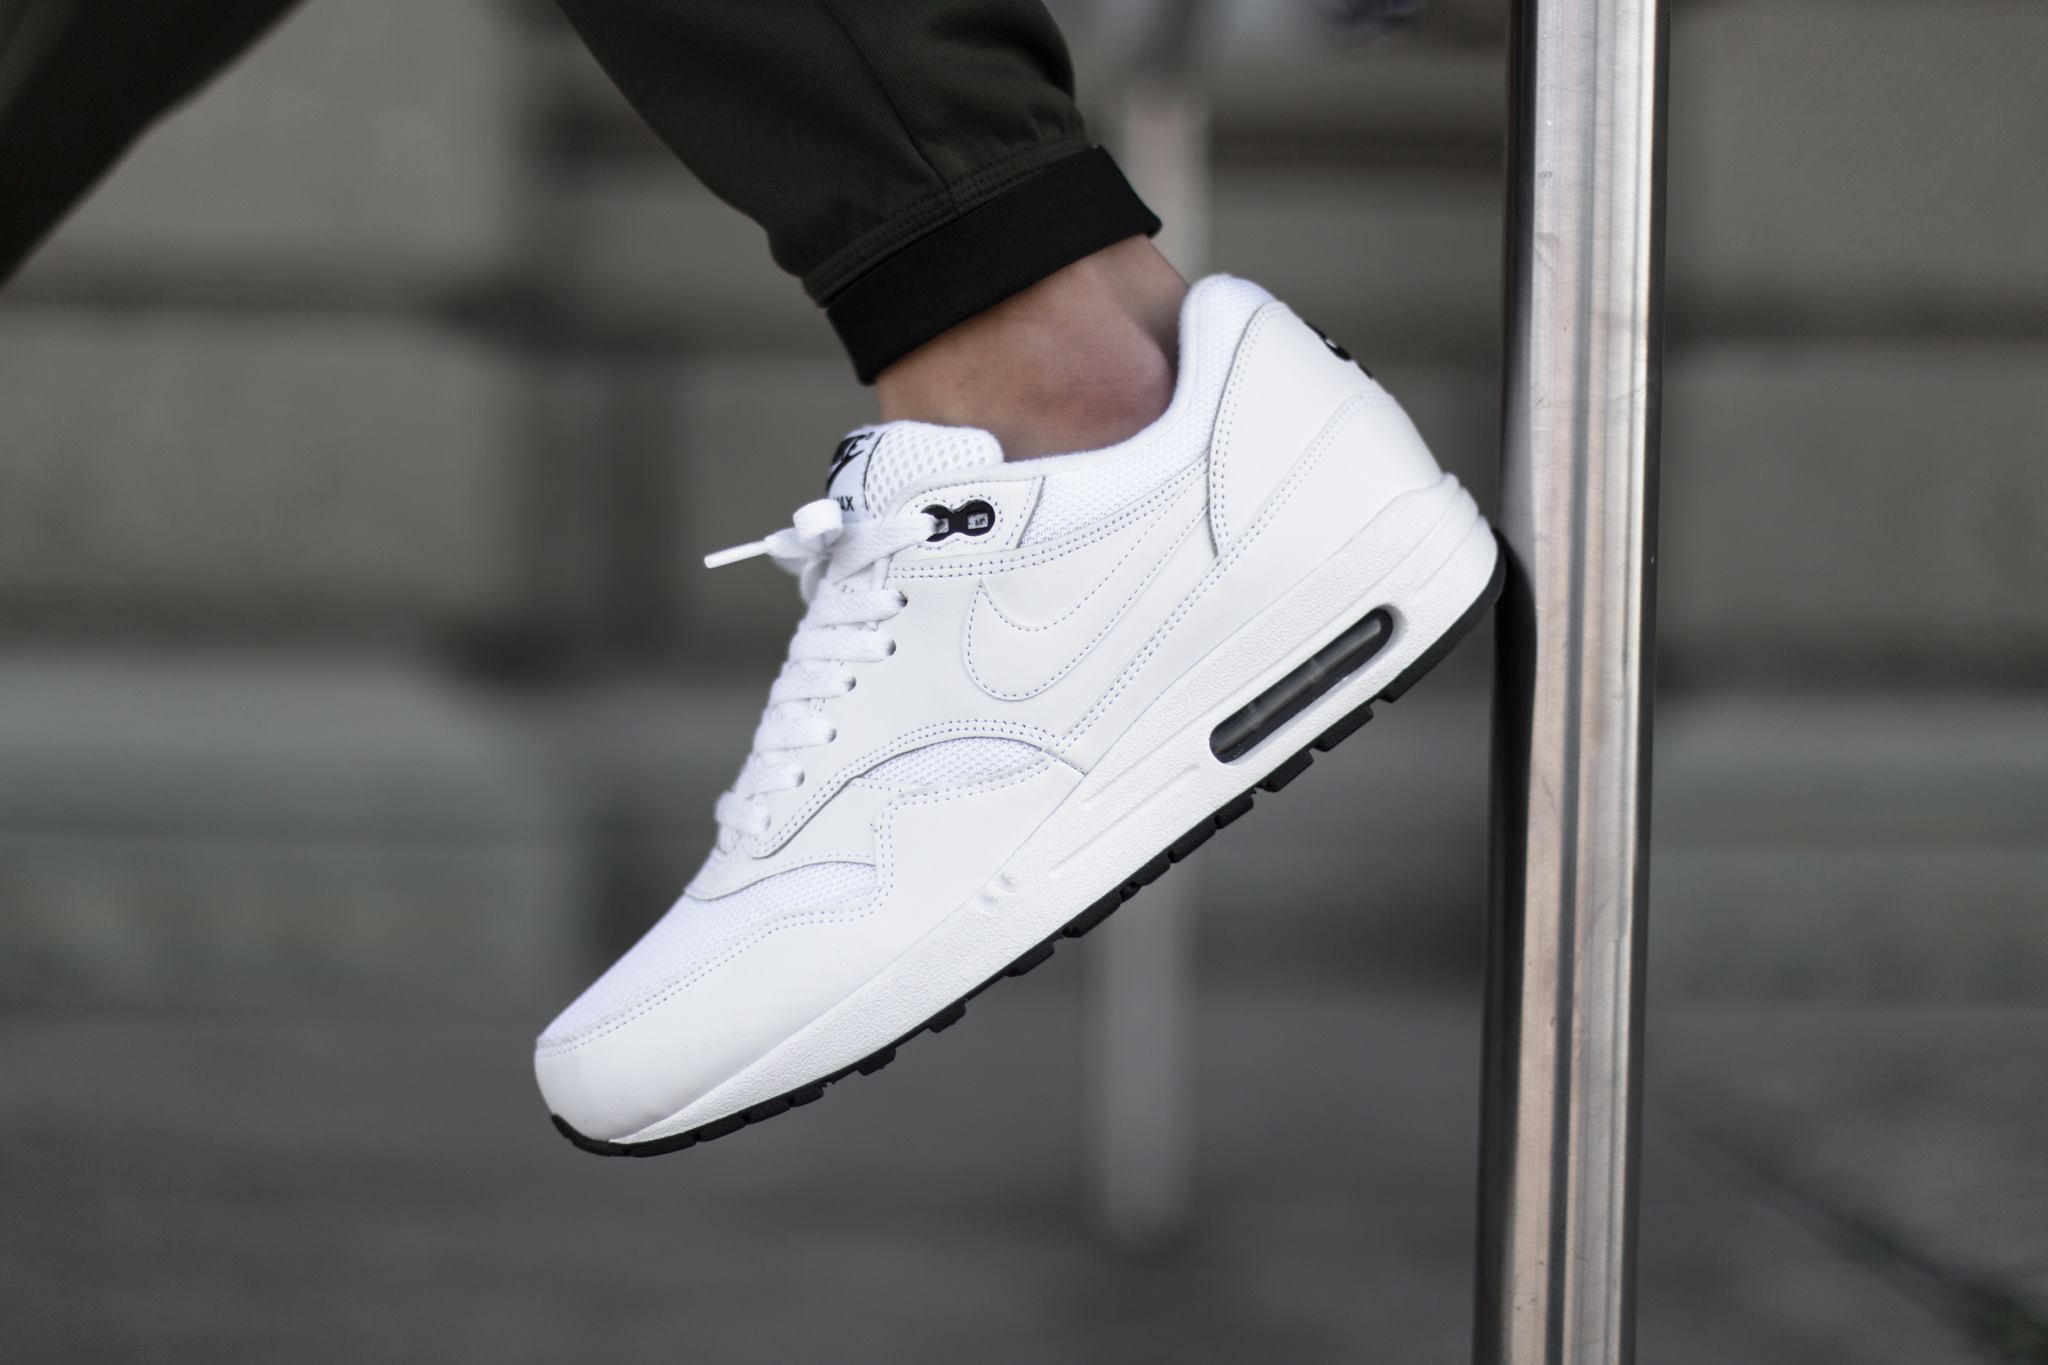 1 Sneaker Black Max White Le De Nike Air La Site Essential KJcTlF1